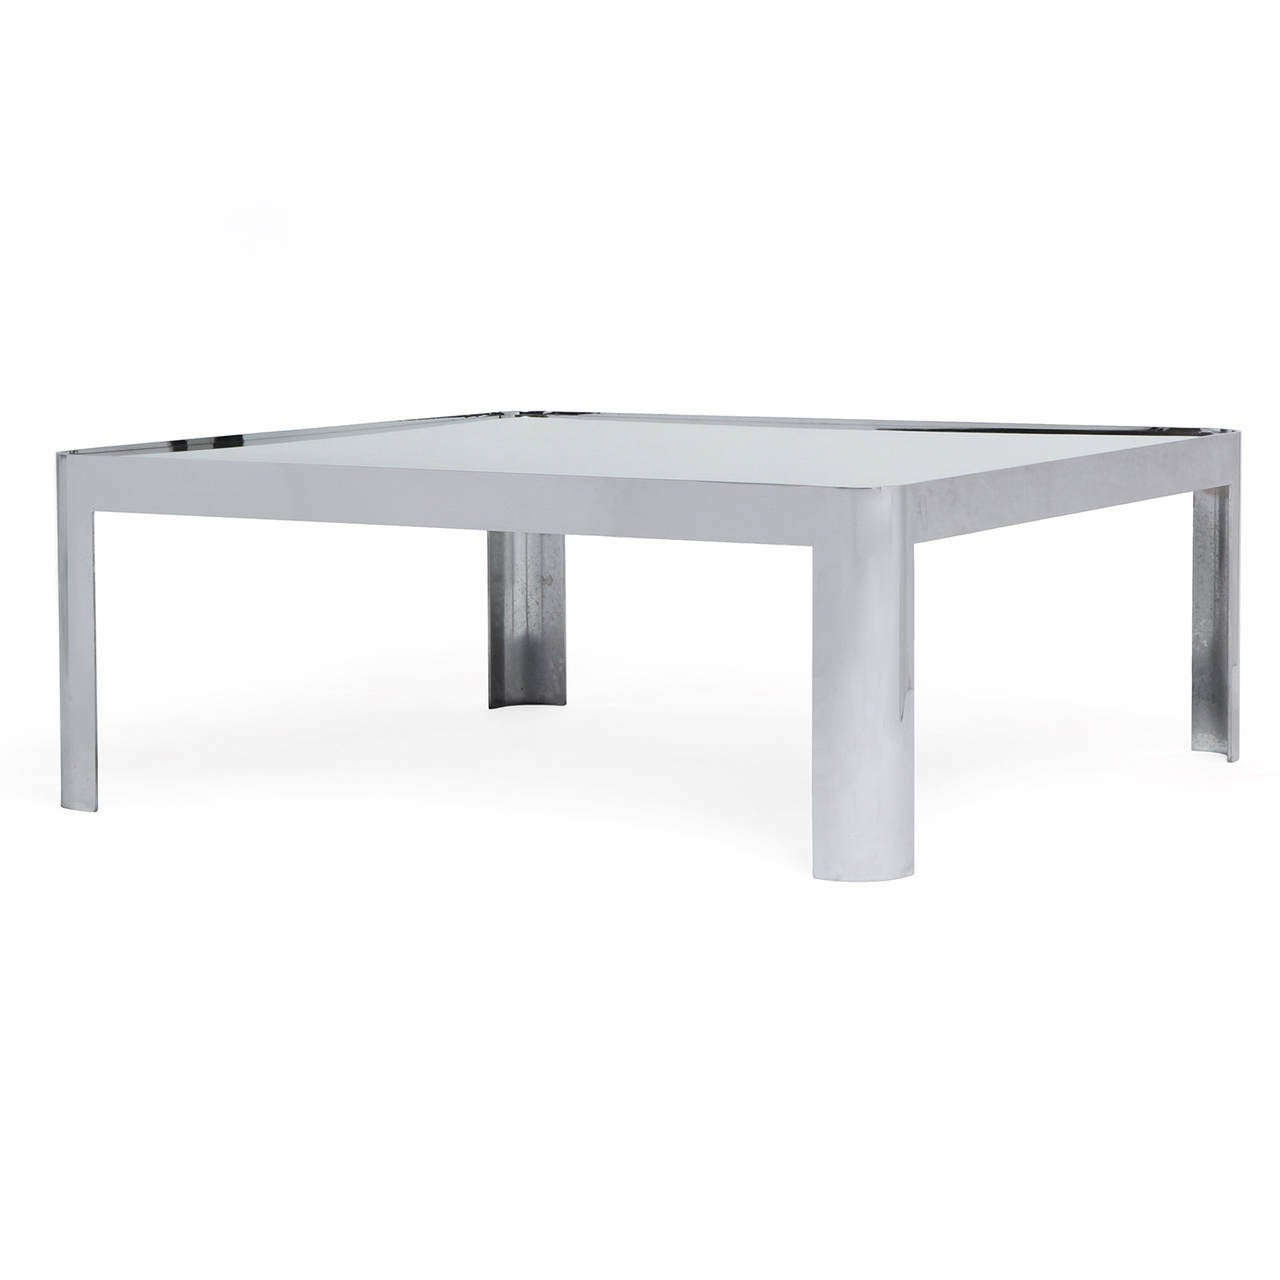 A substantial modernist low table having a one-piece heavy forged polished stainless steel base with rounded corners and legs supporting a floating mirrored glass top.